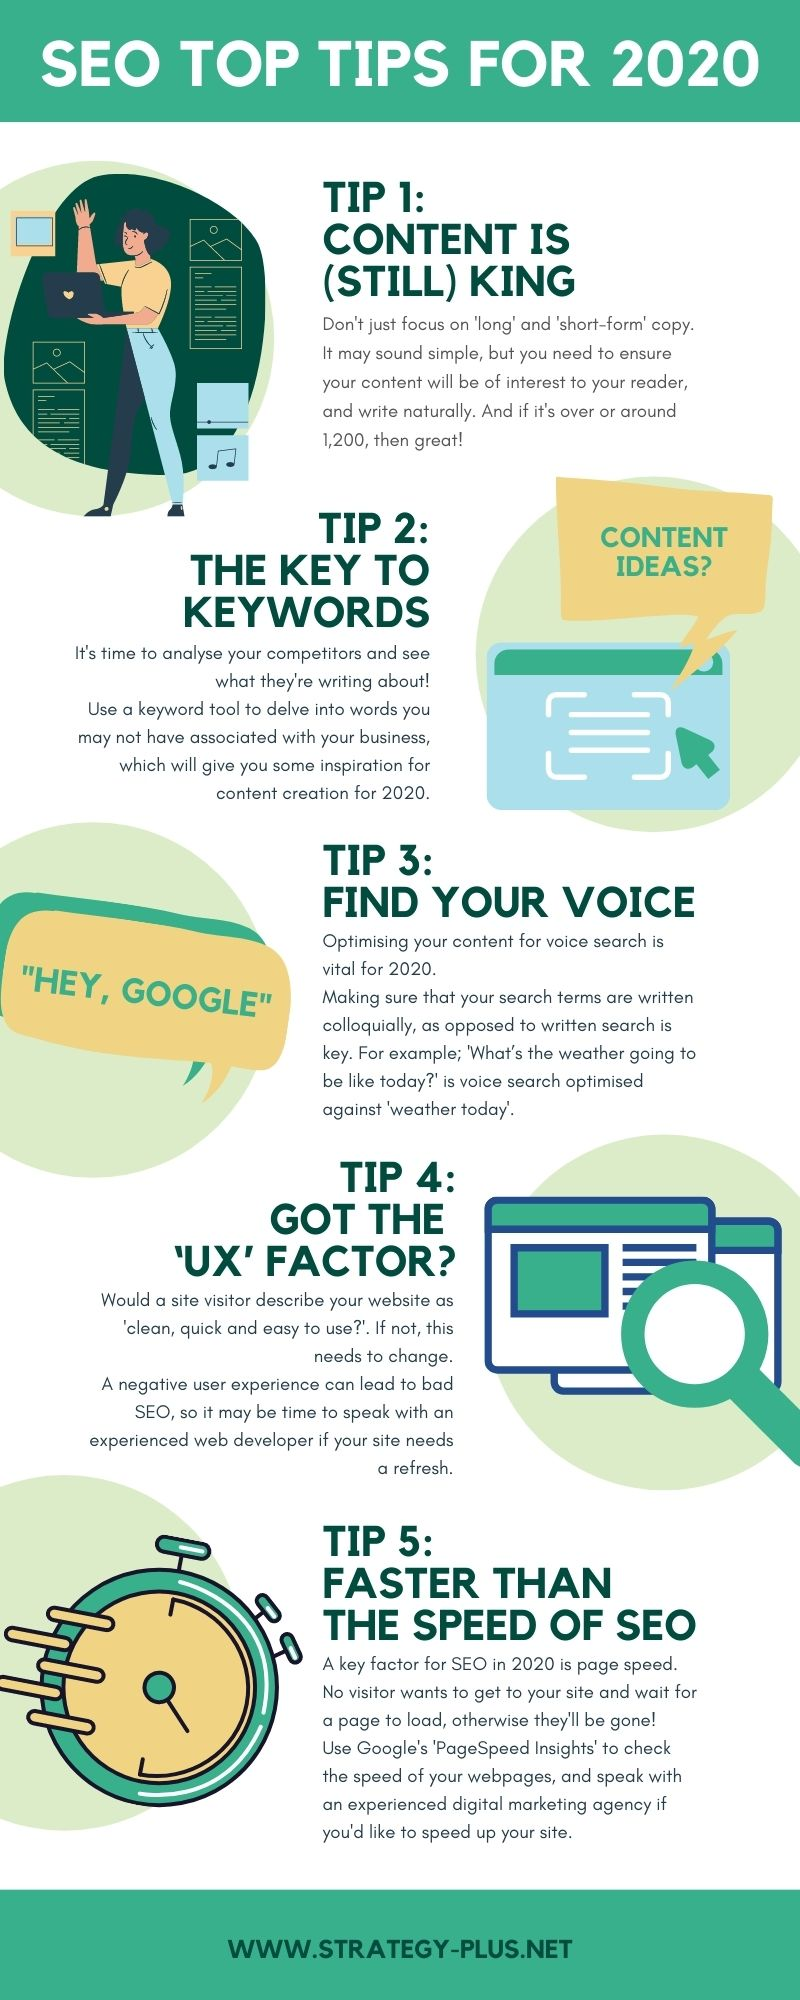 SEO Top Tips For 2020